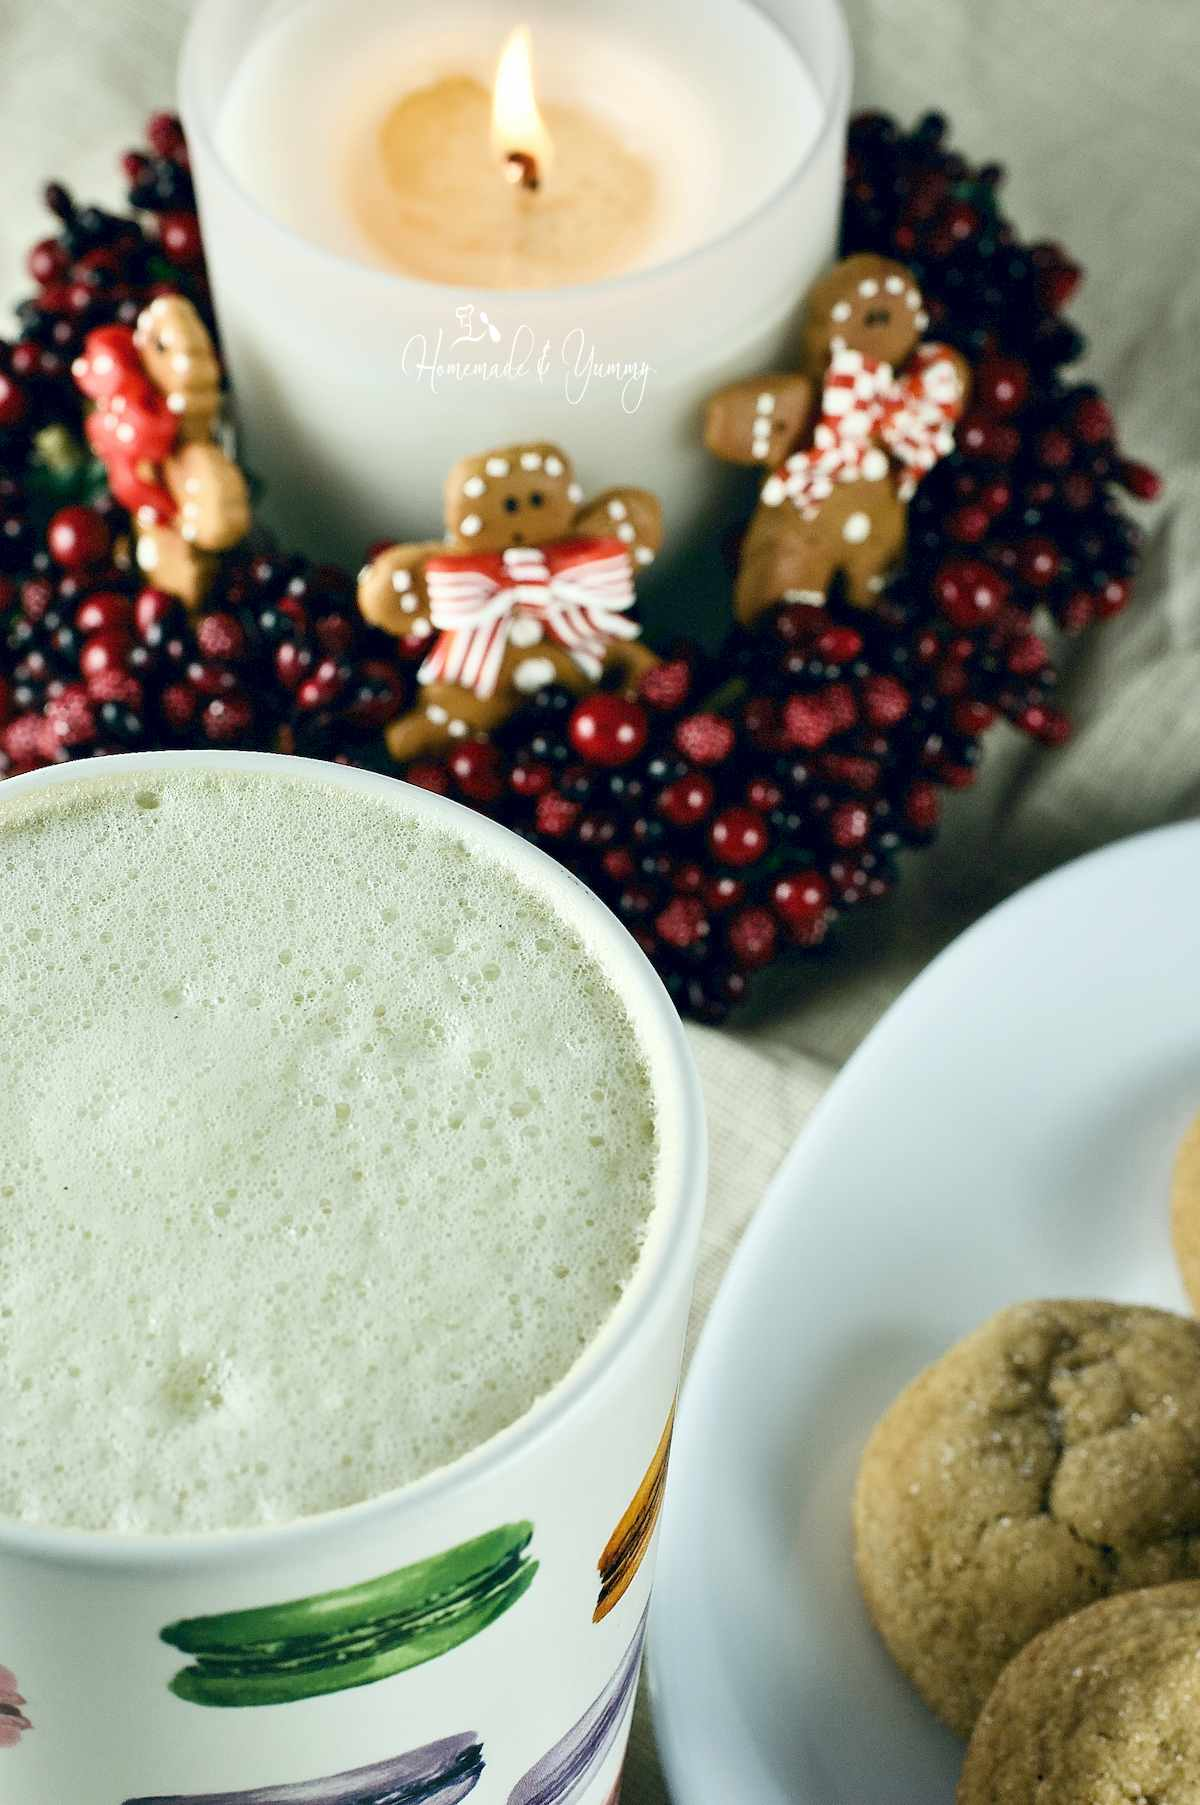 Holiday Tea Latte and some cookies on a plate.